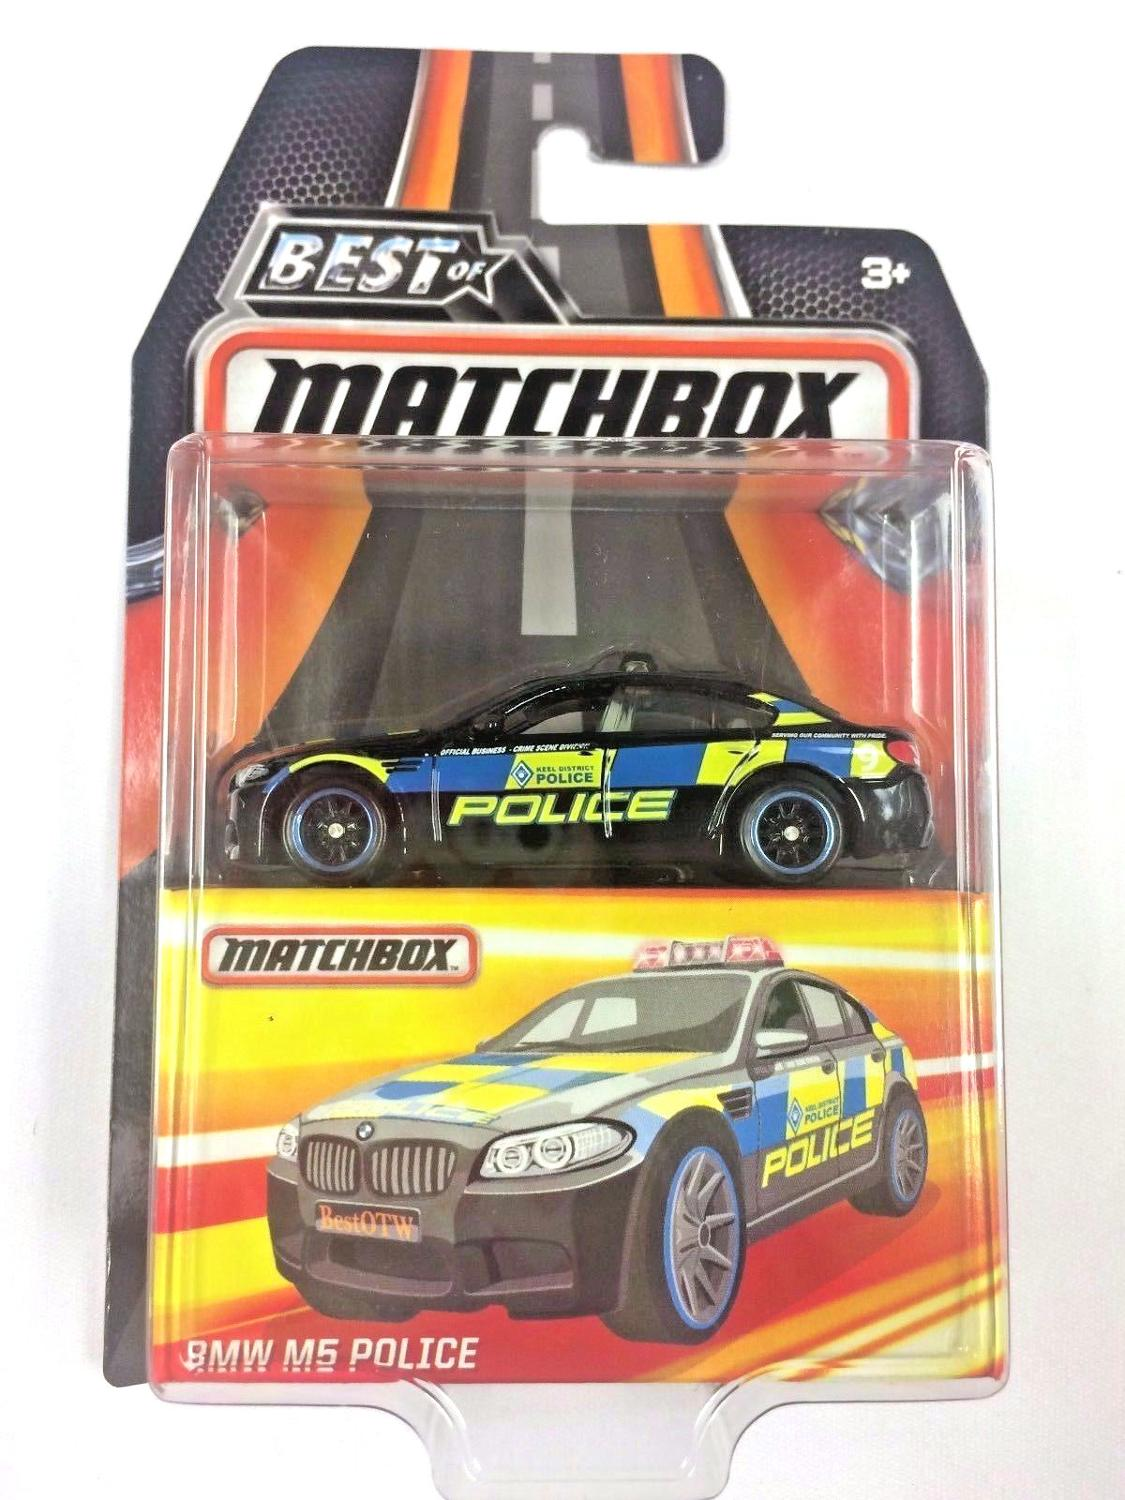 2019 Matchbox Car 1:64 Sports Car B.M.W M5 POLICE Collector Edition BEST OF Metal Diecast Model Car Kids Toys Gift